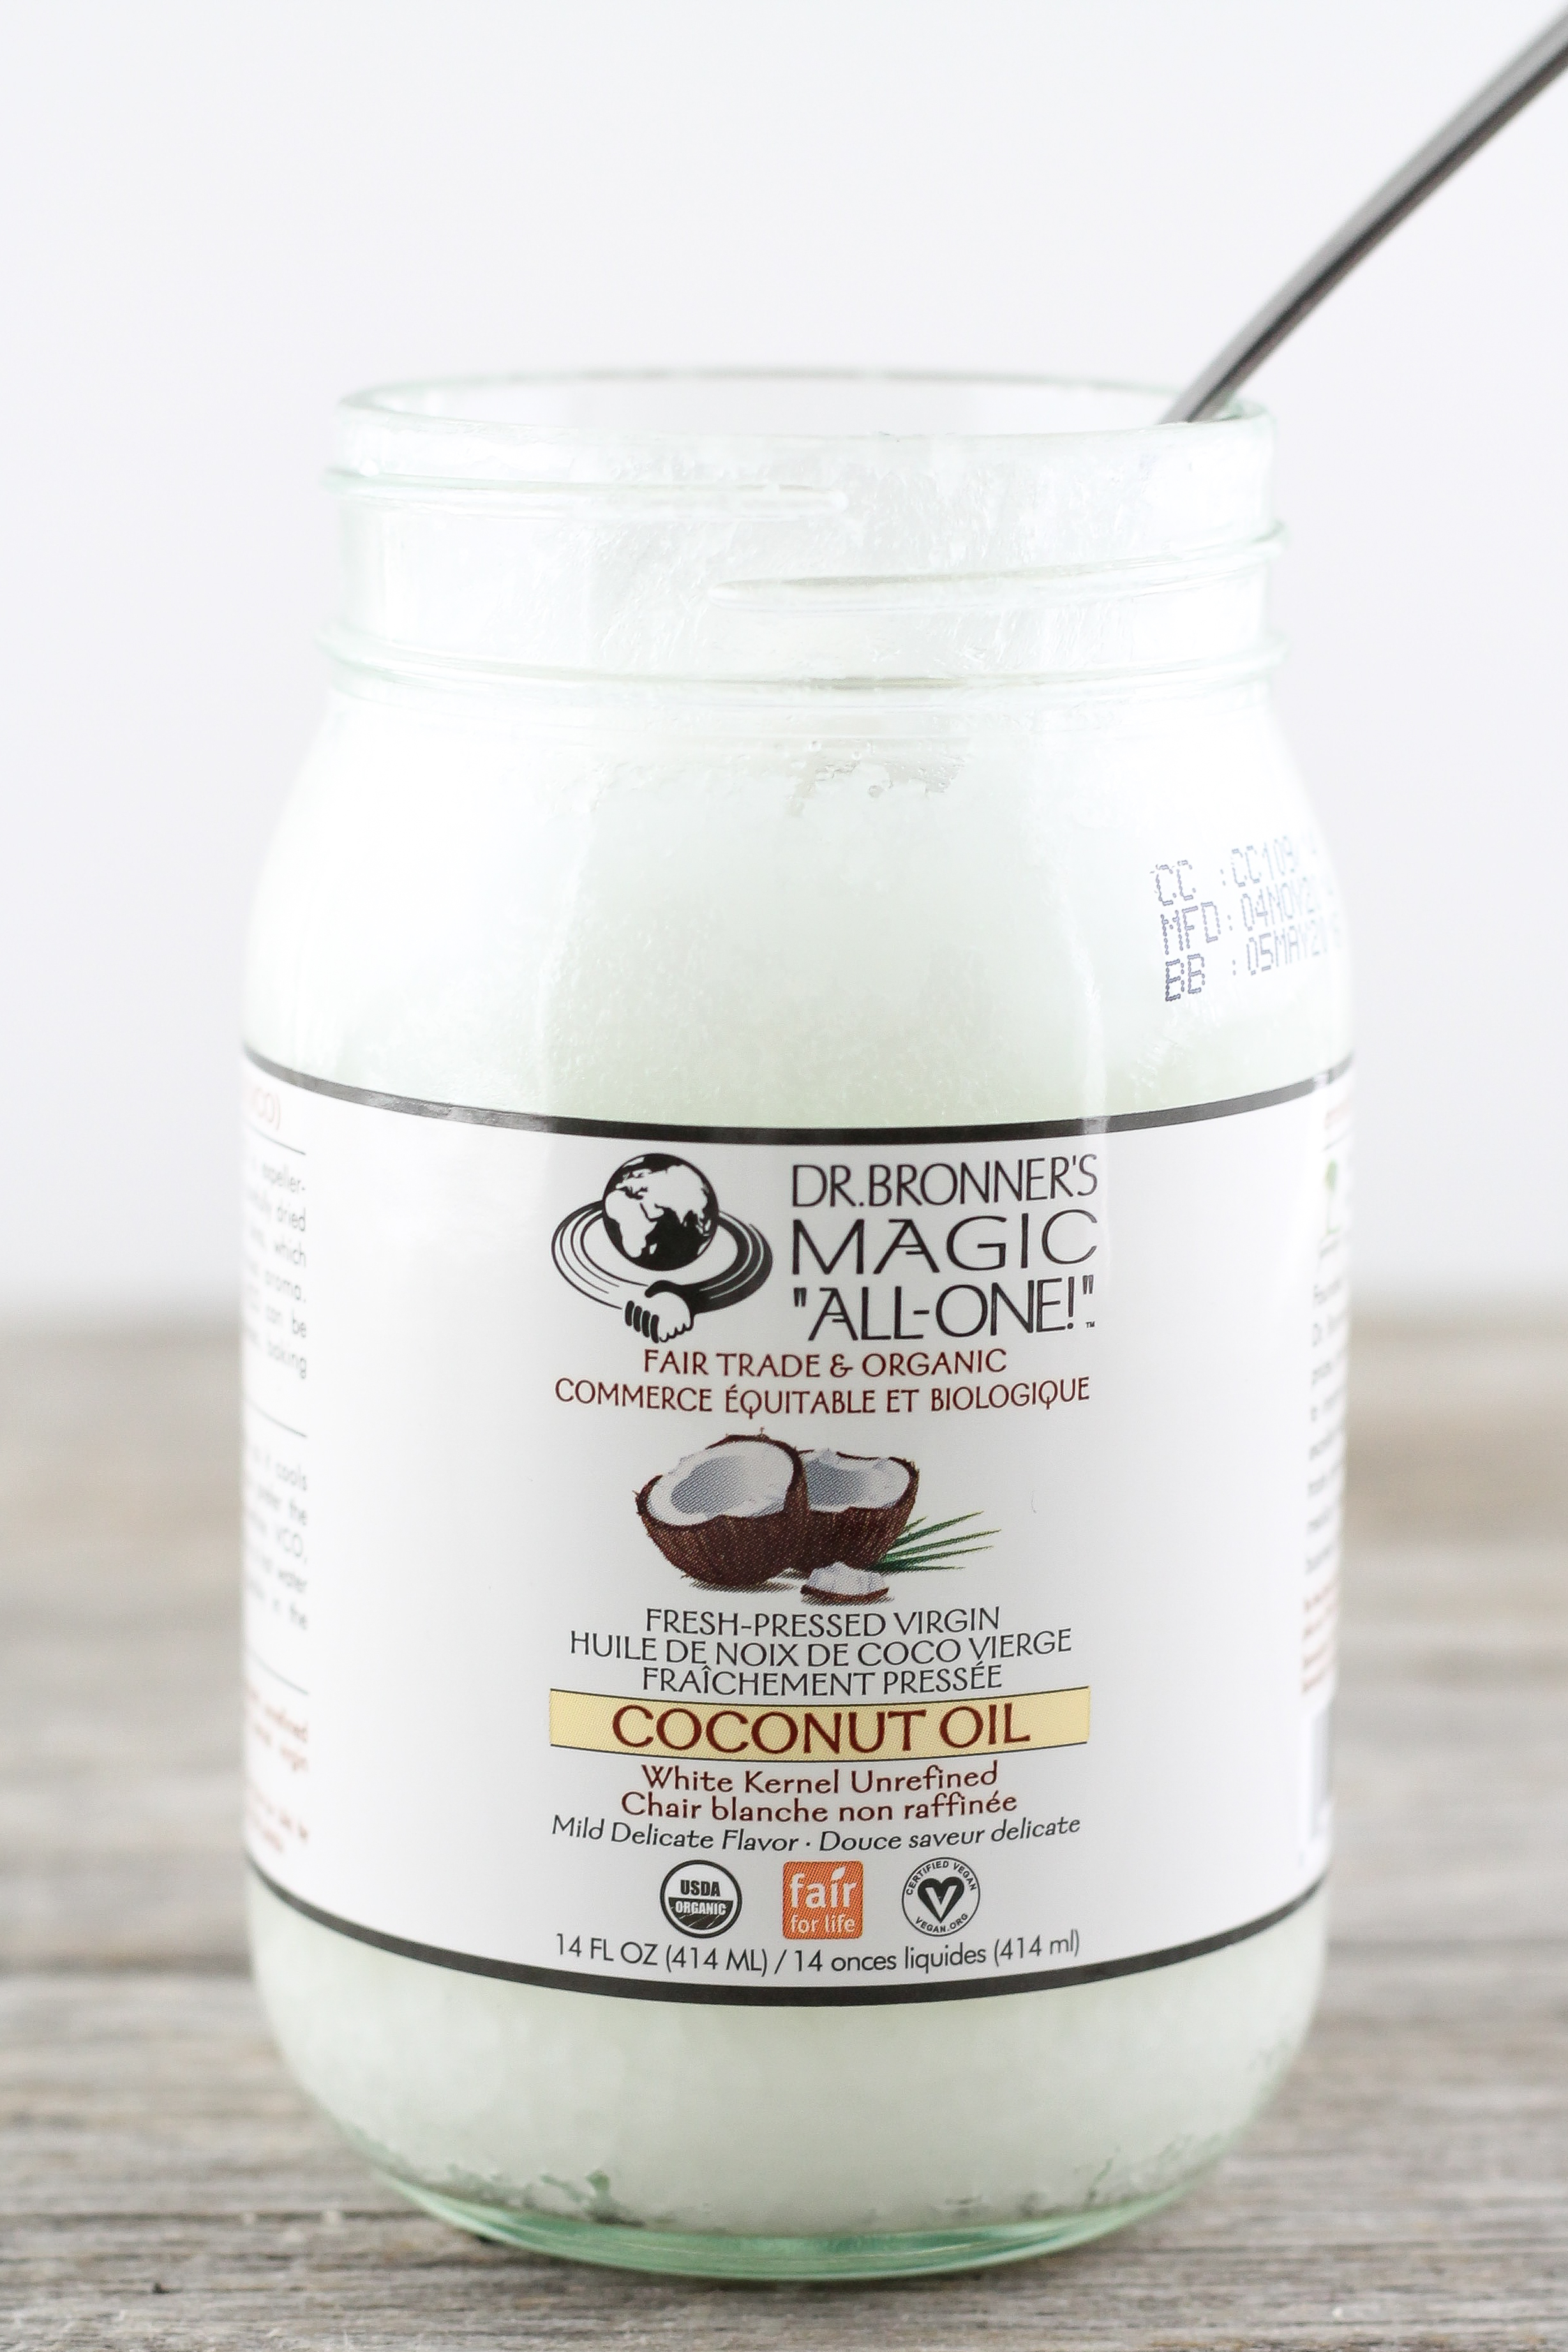 Organic, Coconut Oil, Face Wash, Tooth Paste, Natural Products, Coconut Oil uses